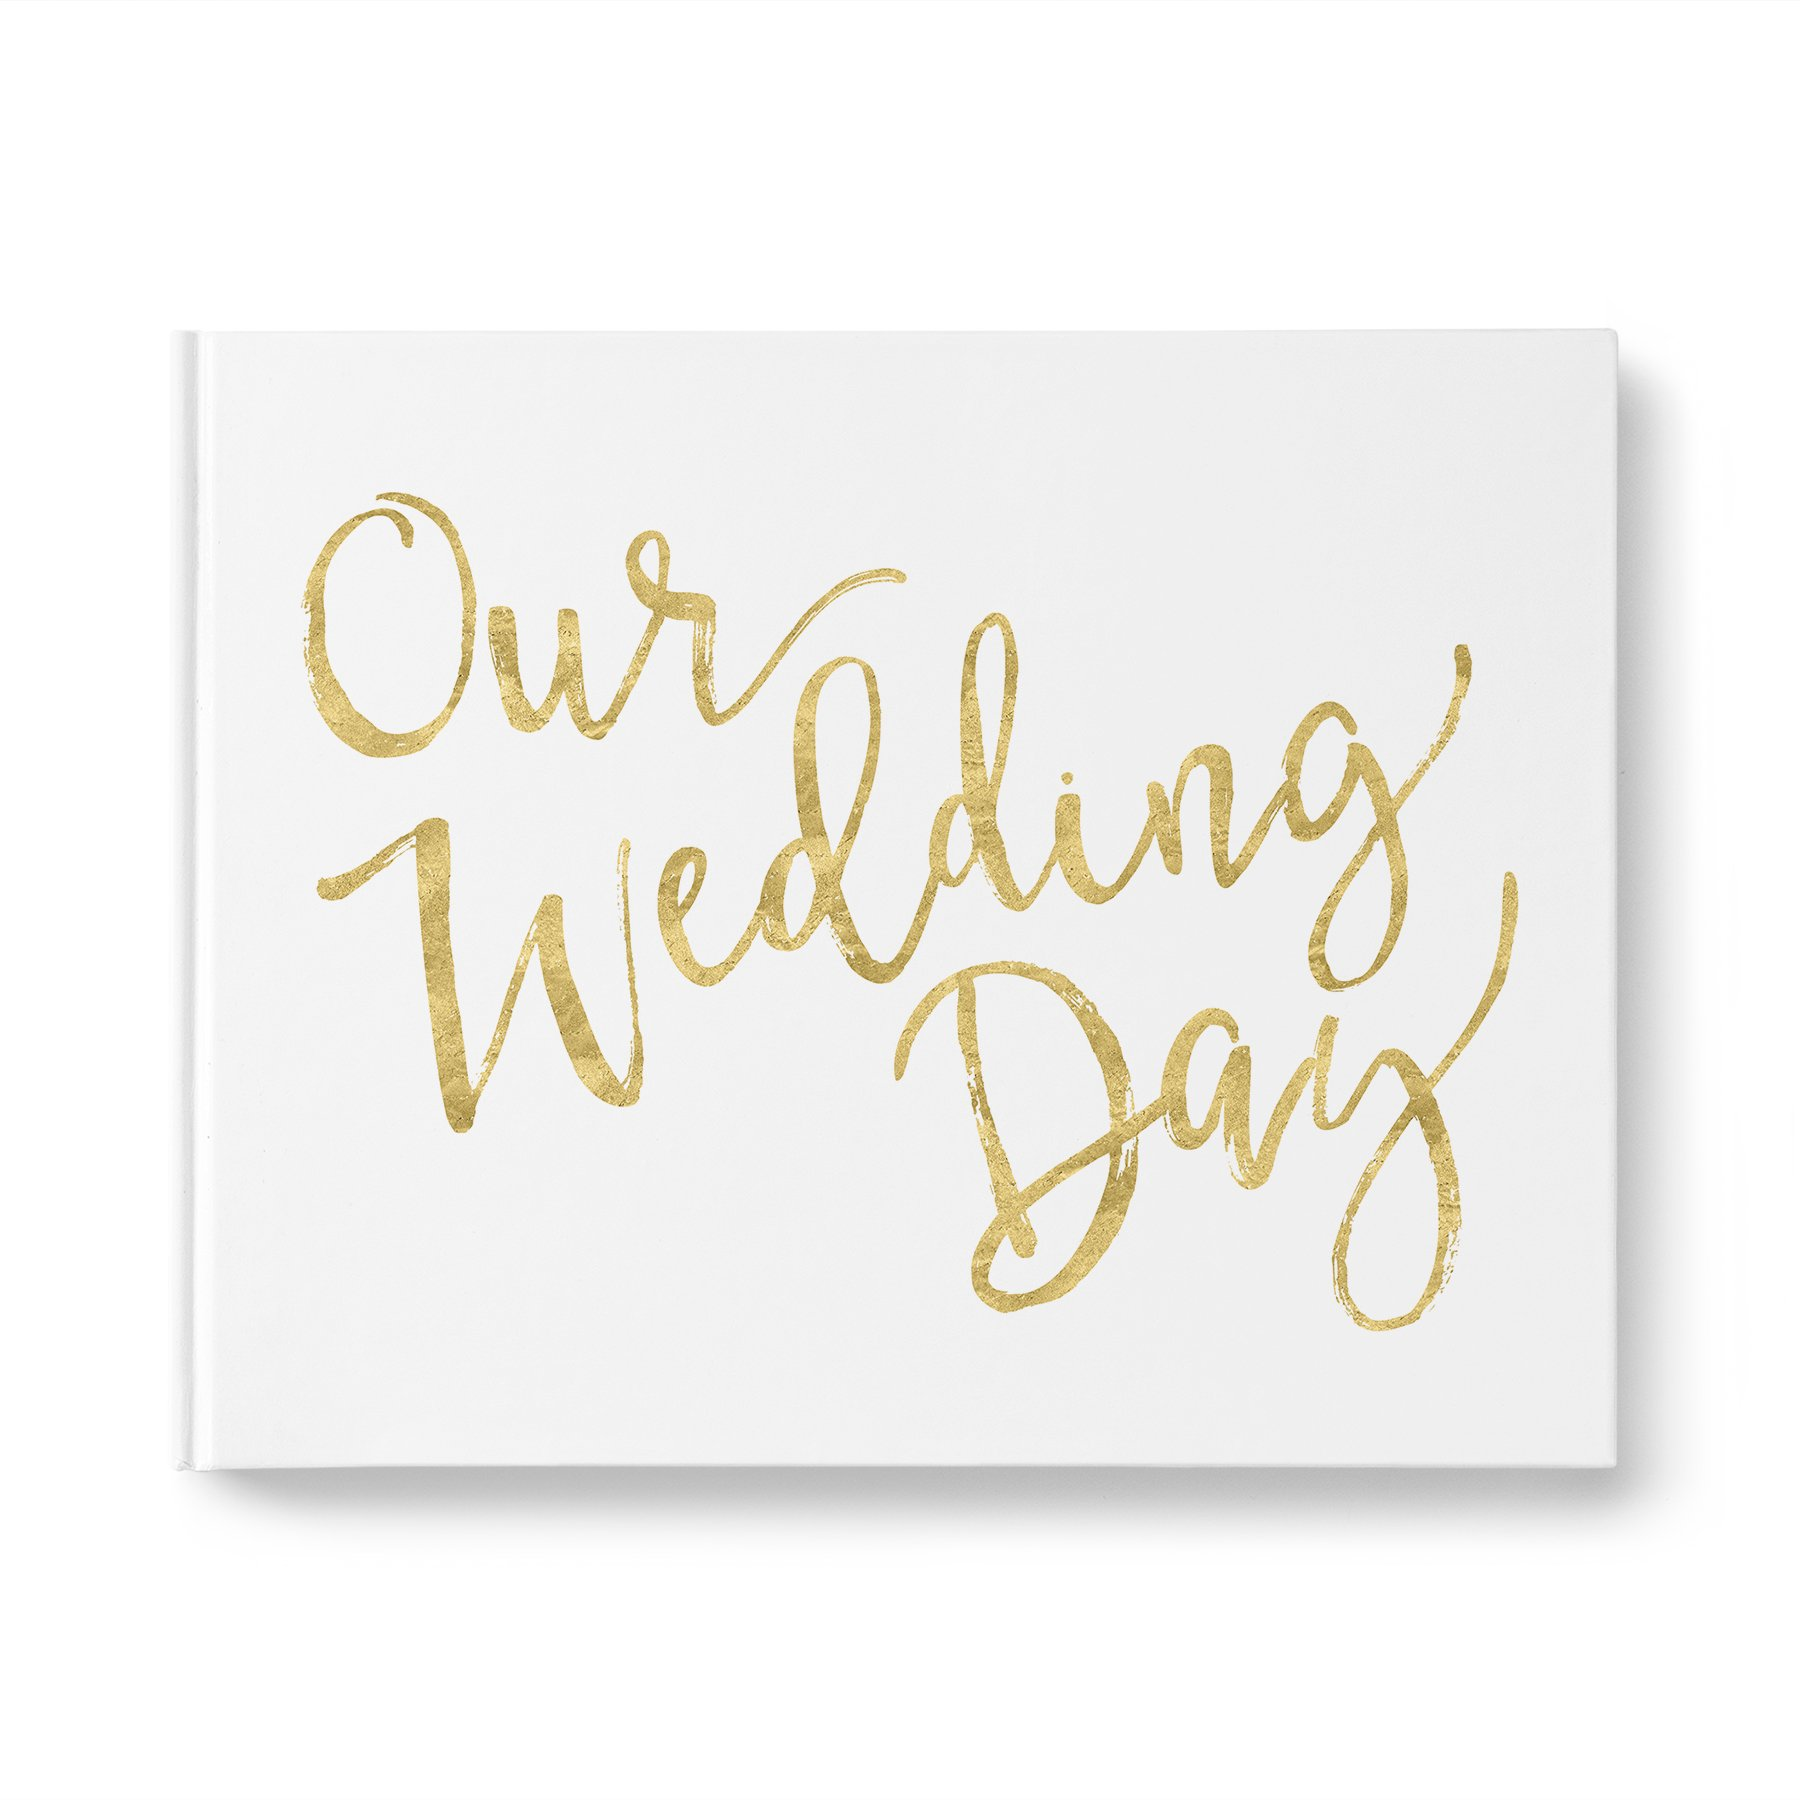 Please + Thanks Wedding Guest Book, Real Metallic Gold Foil Cover Design, White Casebound Hardcover, 40 Acid-Free Blank White Interior Sheets (80 Total Pages) (10.9 x 8.75 Inches)